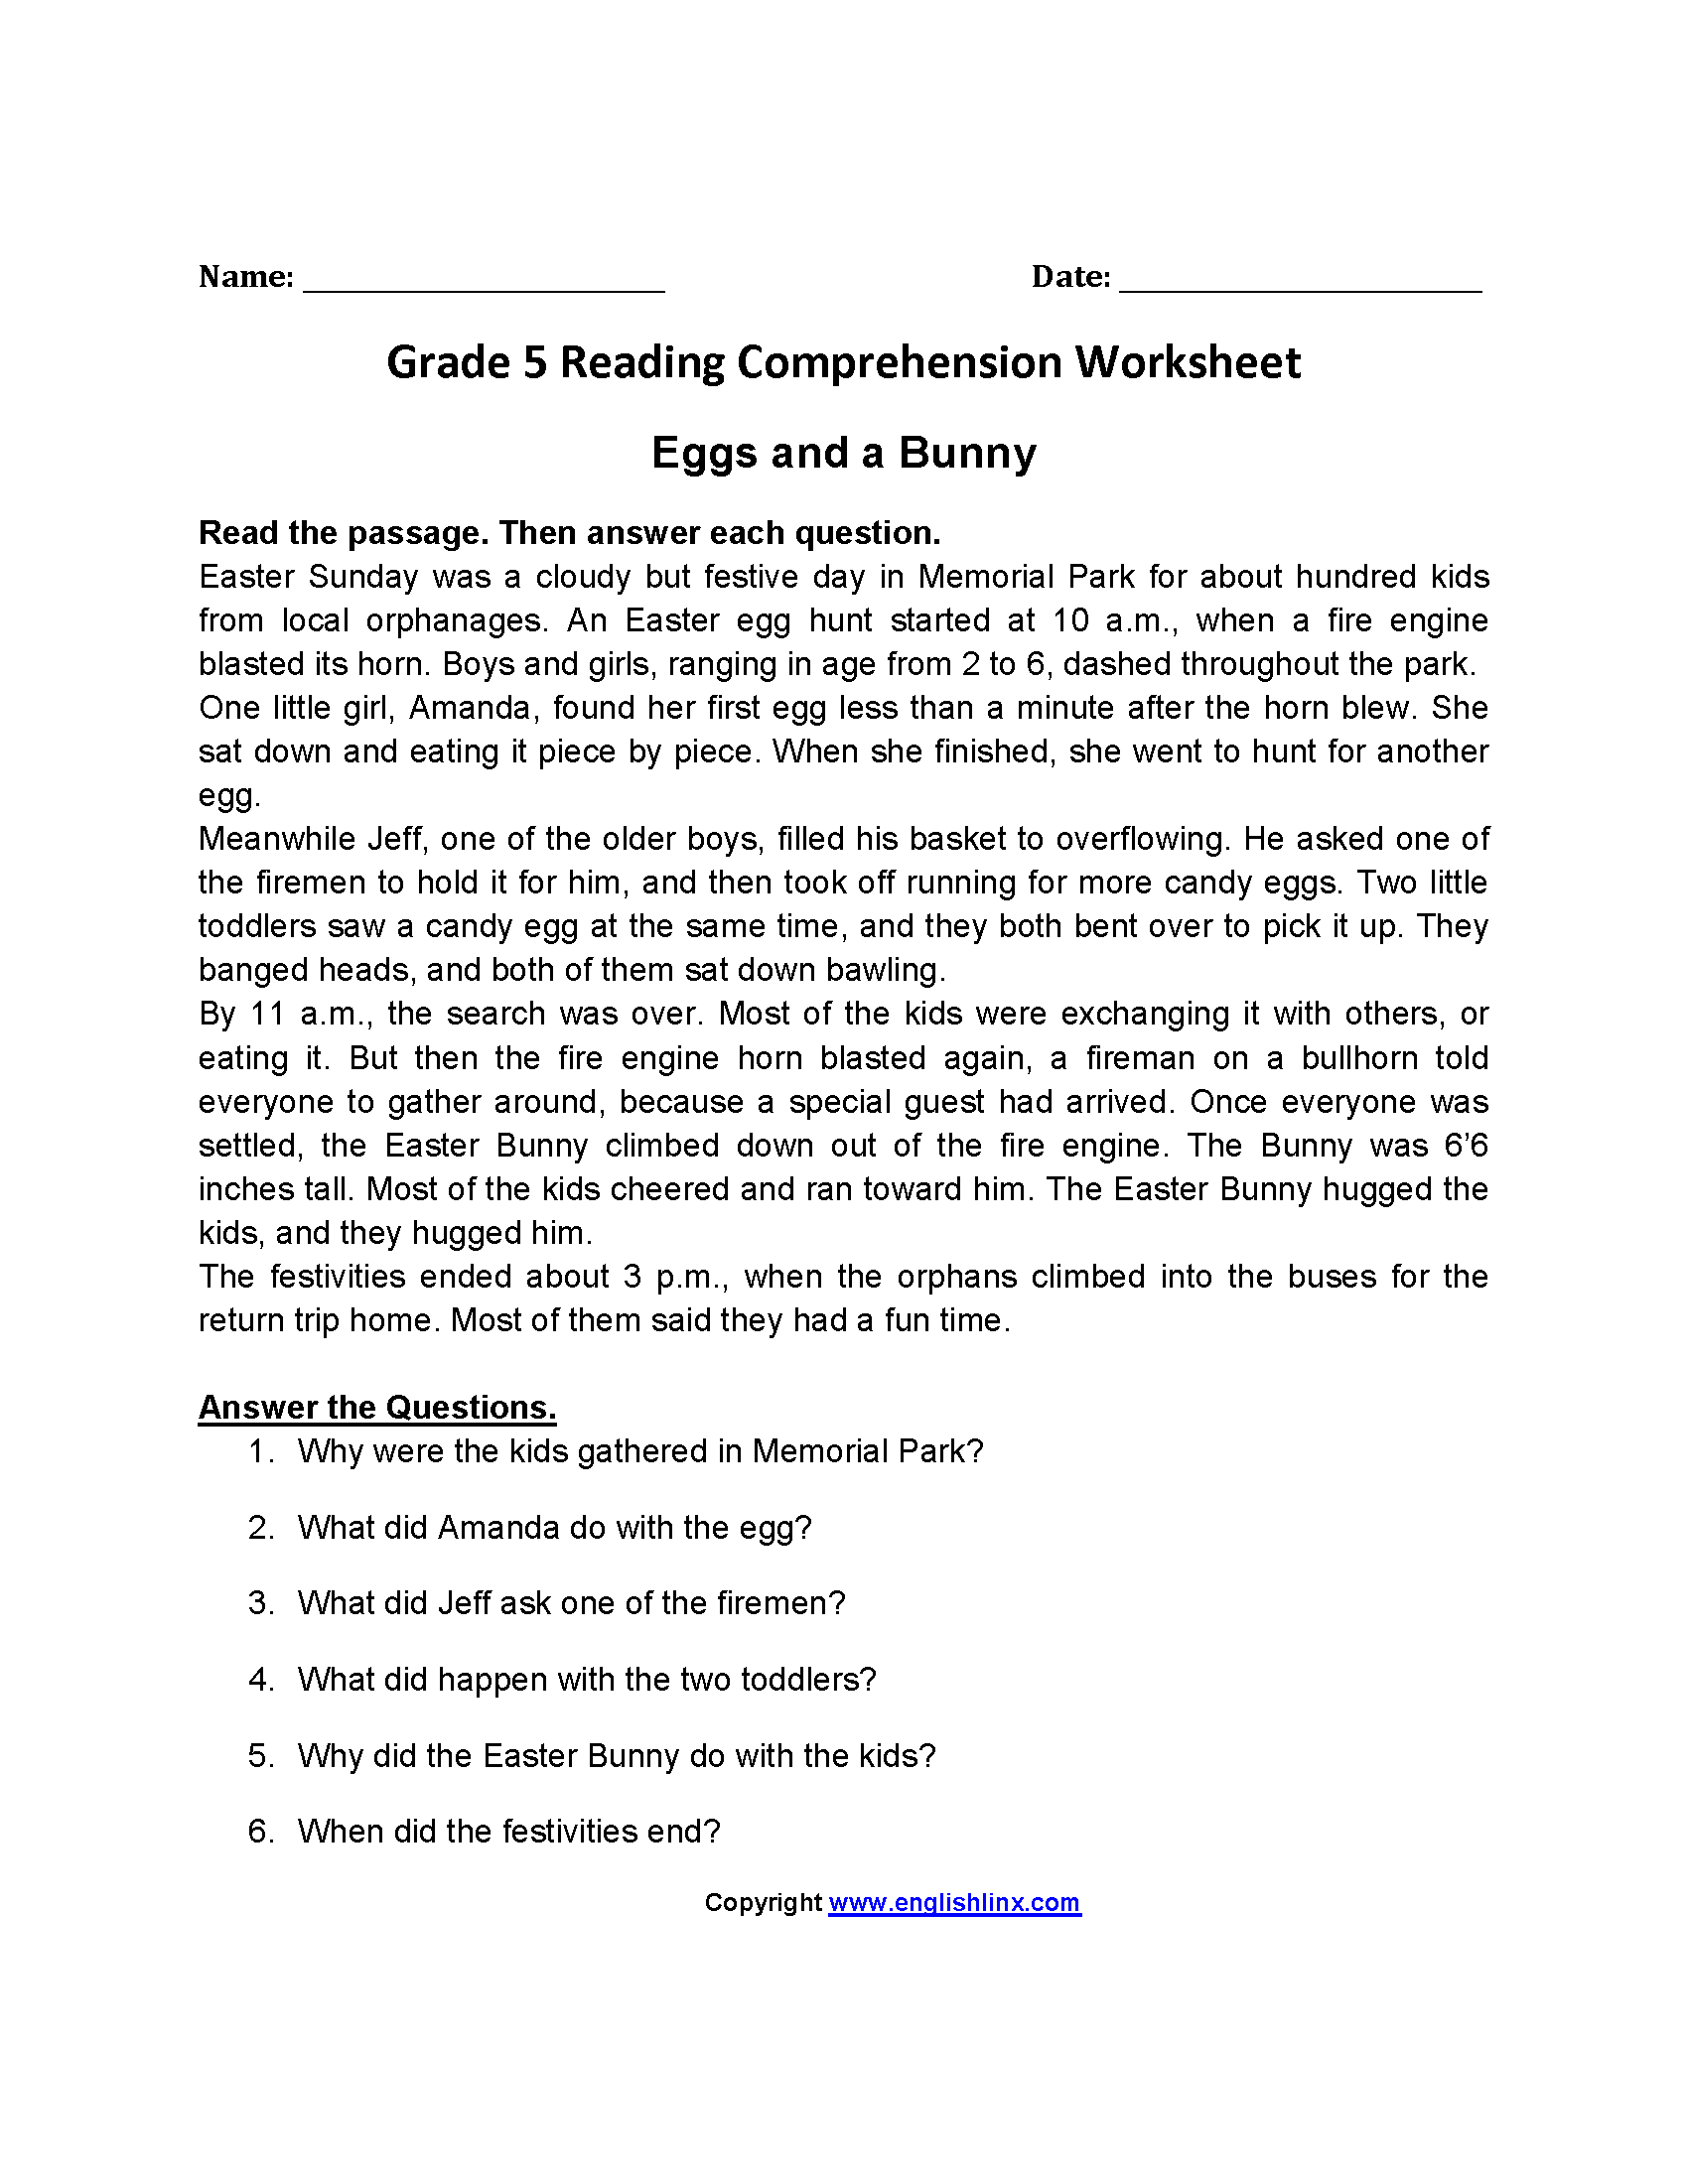 Worksheets Reading Worksheets 5th Grade reading worksheets fifth grade worksheets